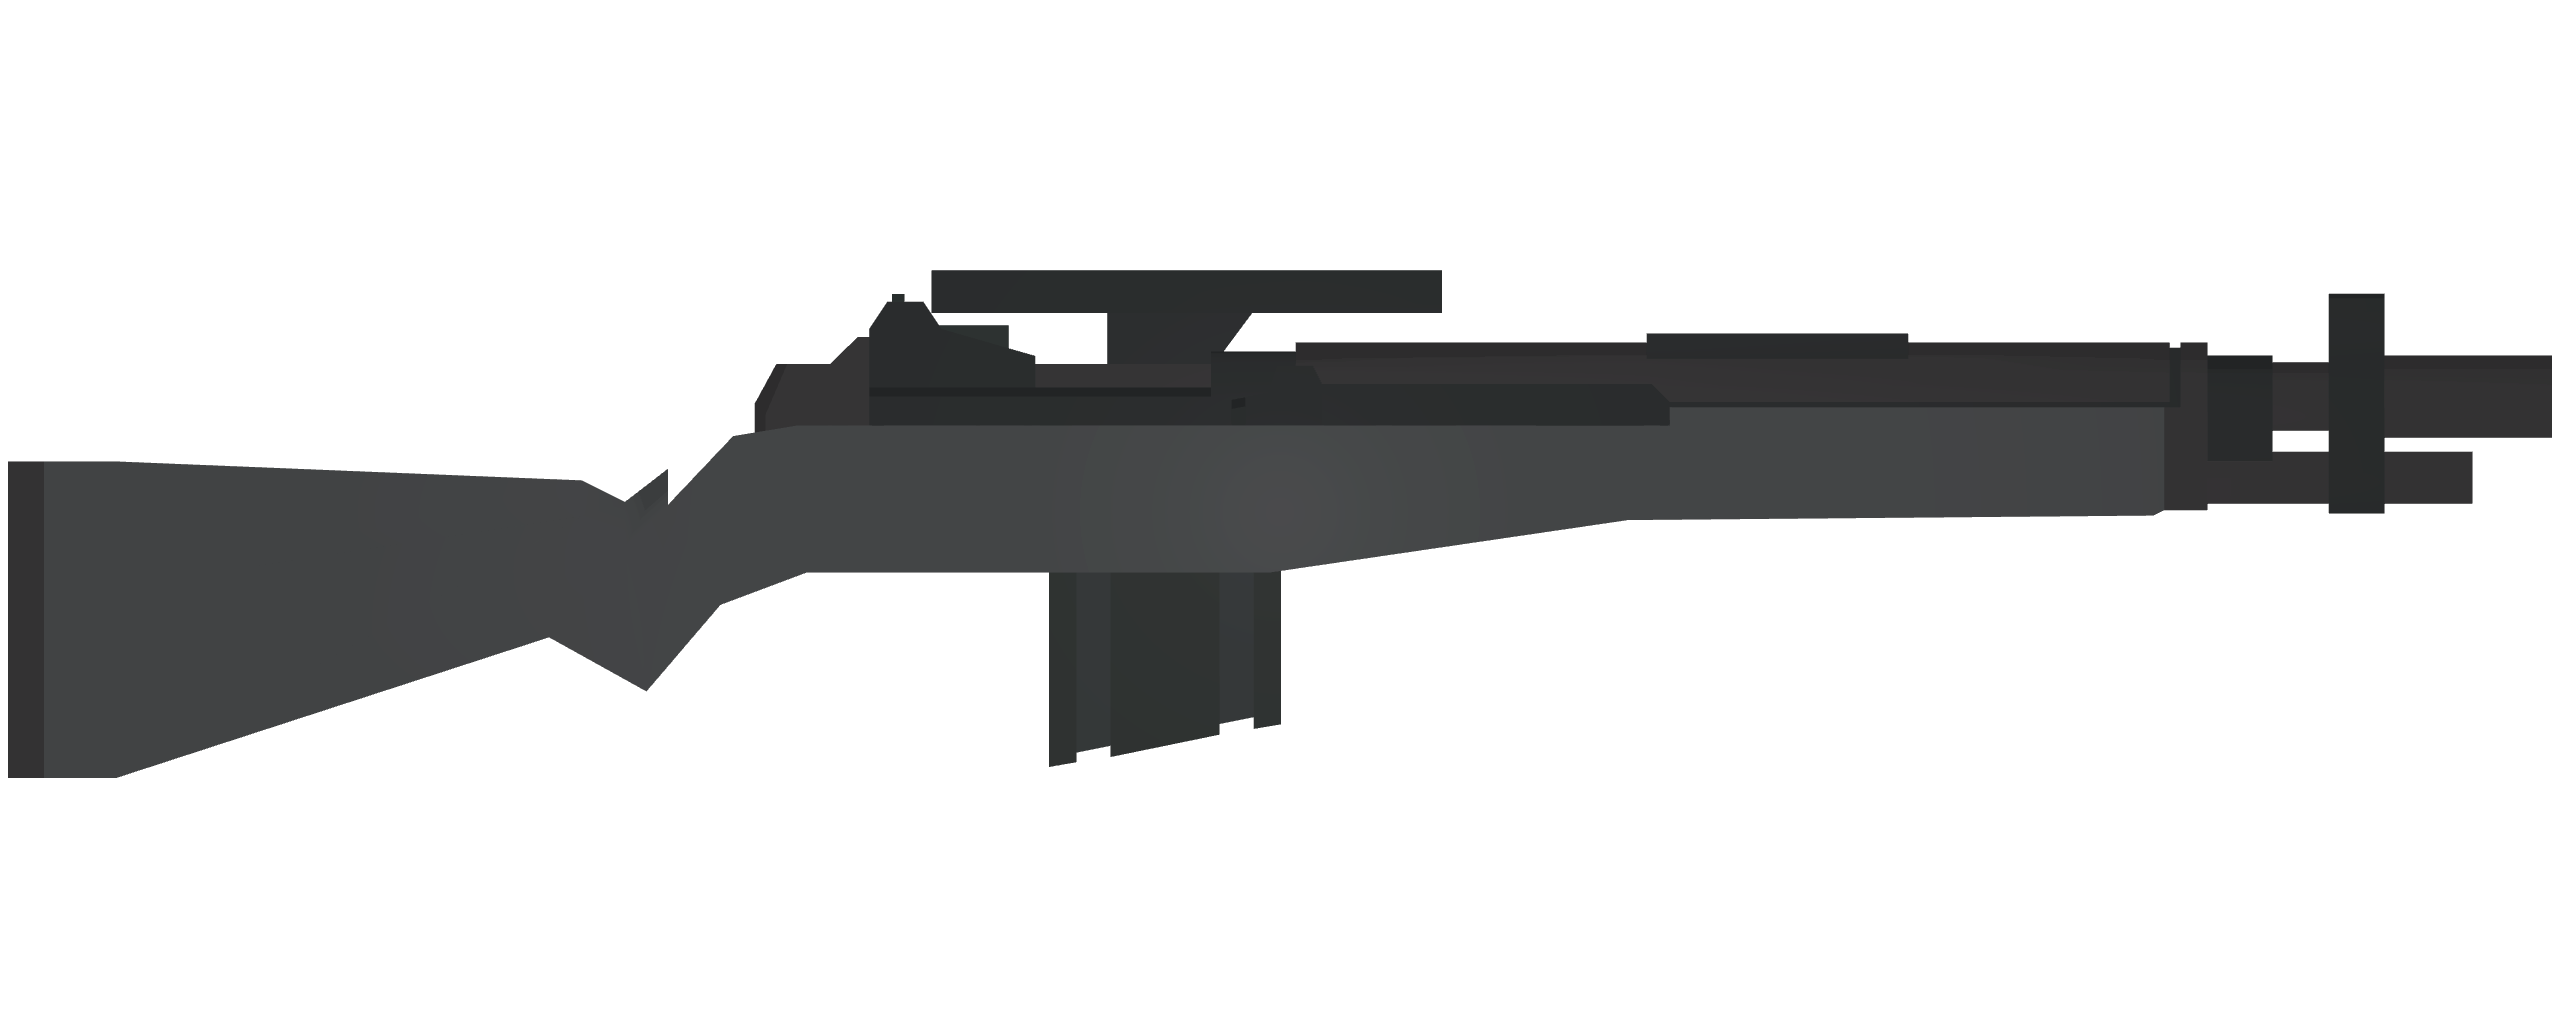 Unturned Uncreated Warfare Mods & All ID List + Attachments - USA Weapons - 277A56F